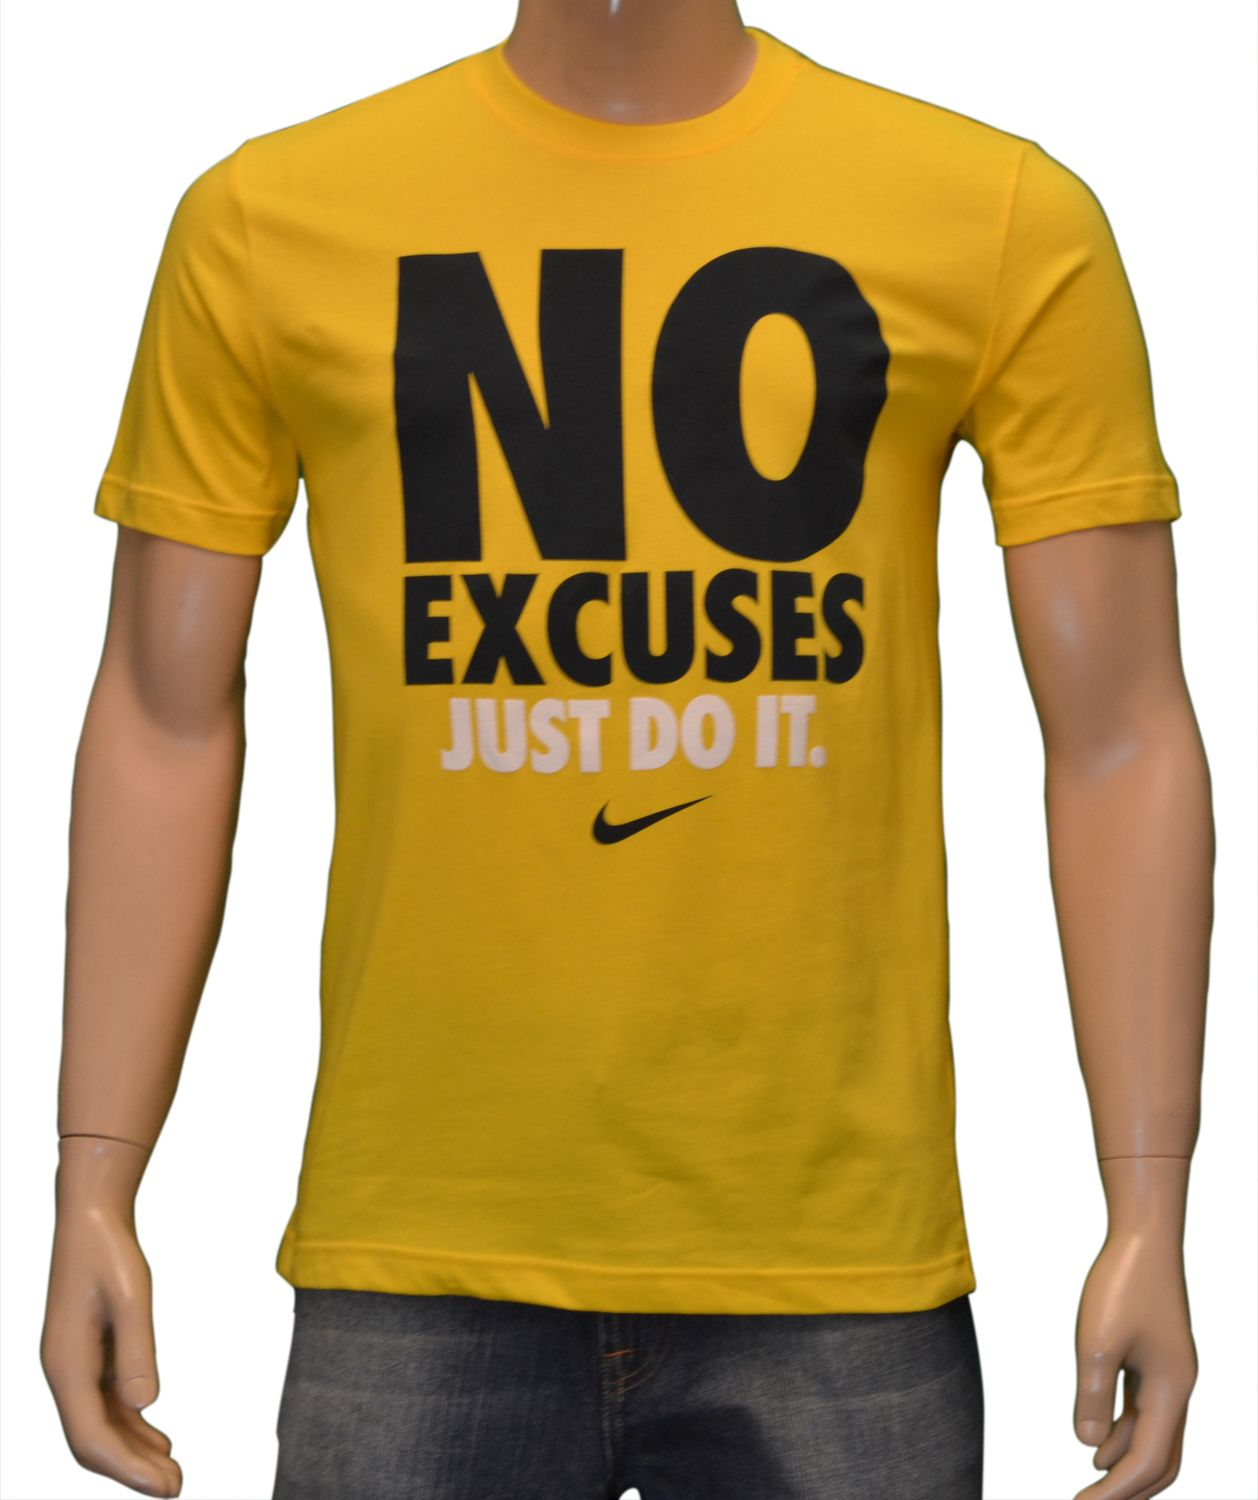 Details about Nike Men's NO EXCUSES JUST DO IT Shirt Yellow